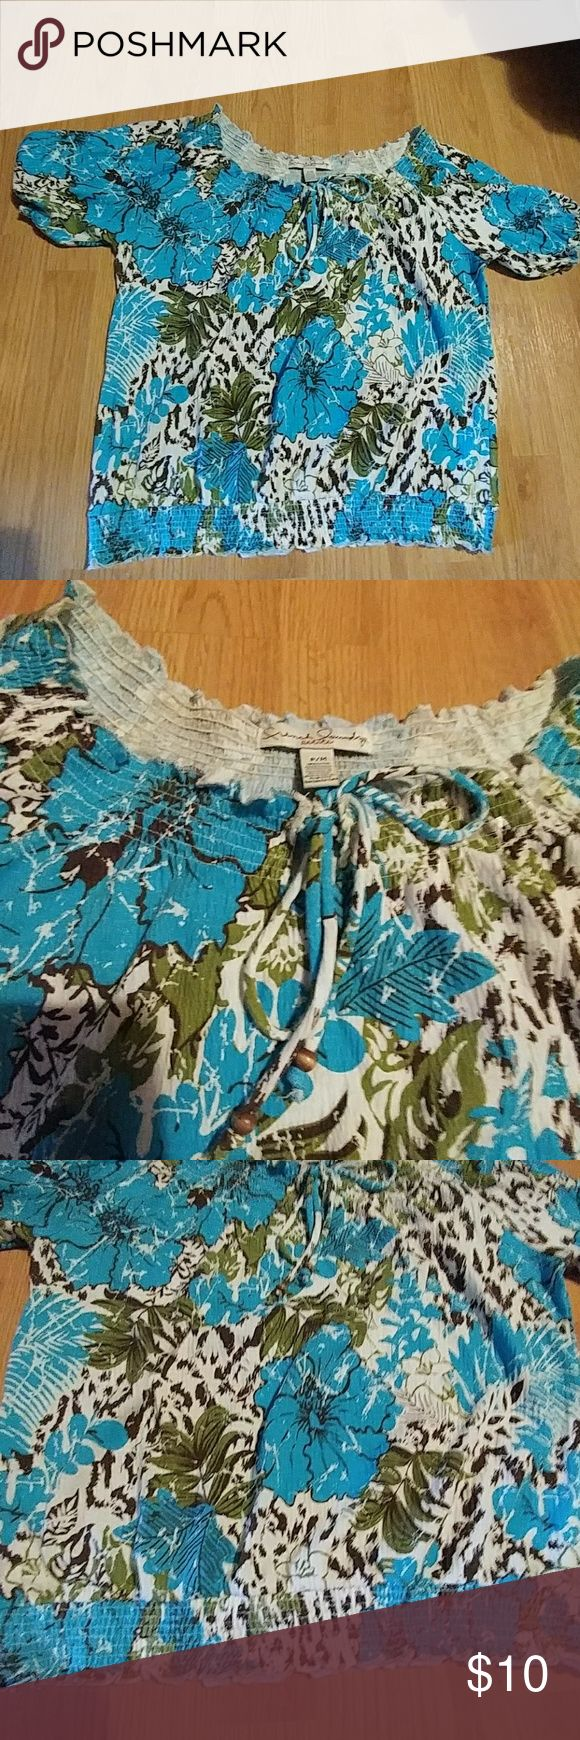 French Laundry Stretch boho look blouse Very good condition. Gathered hem, tie at neck with beads on strings. Light blue, cream, brown and green in color. French Laundry Tops Blouses